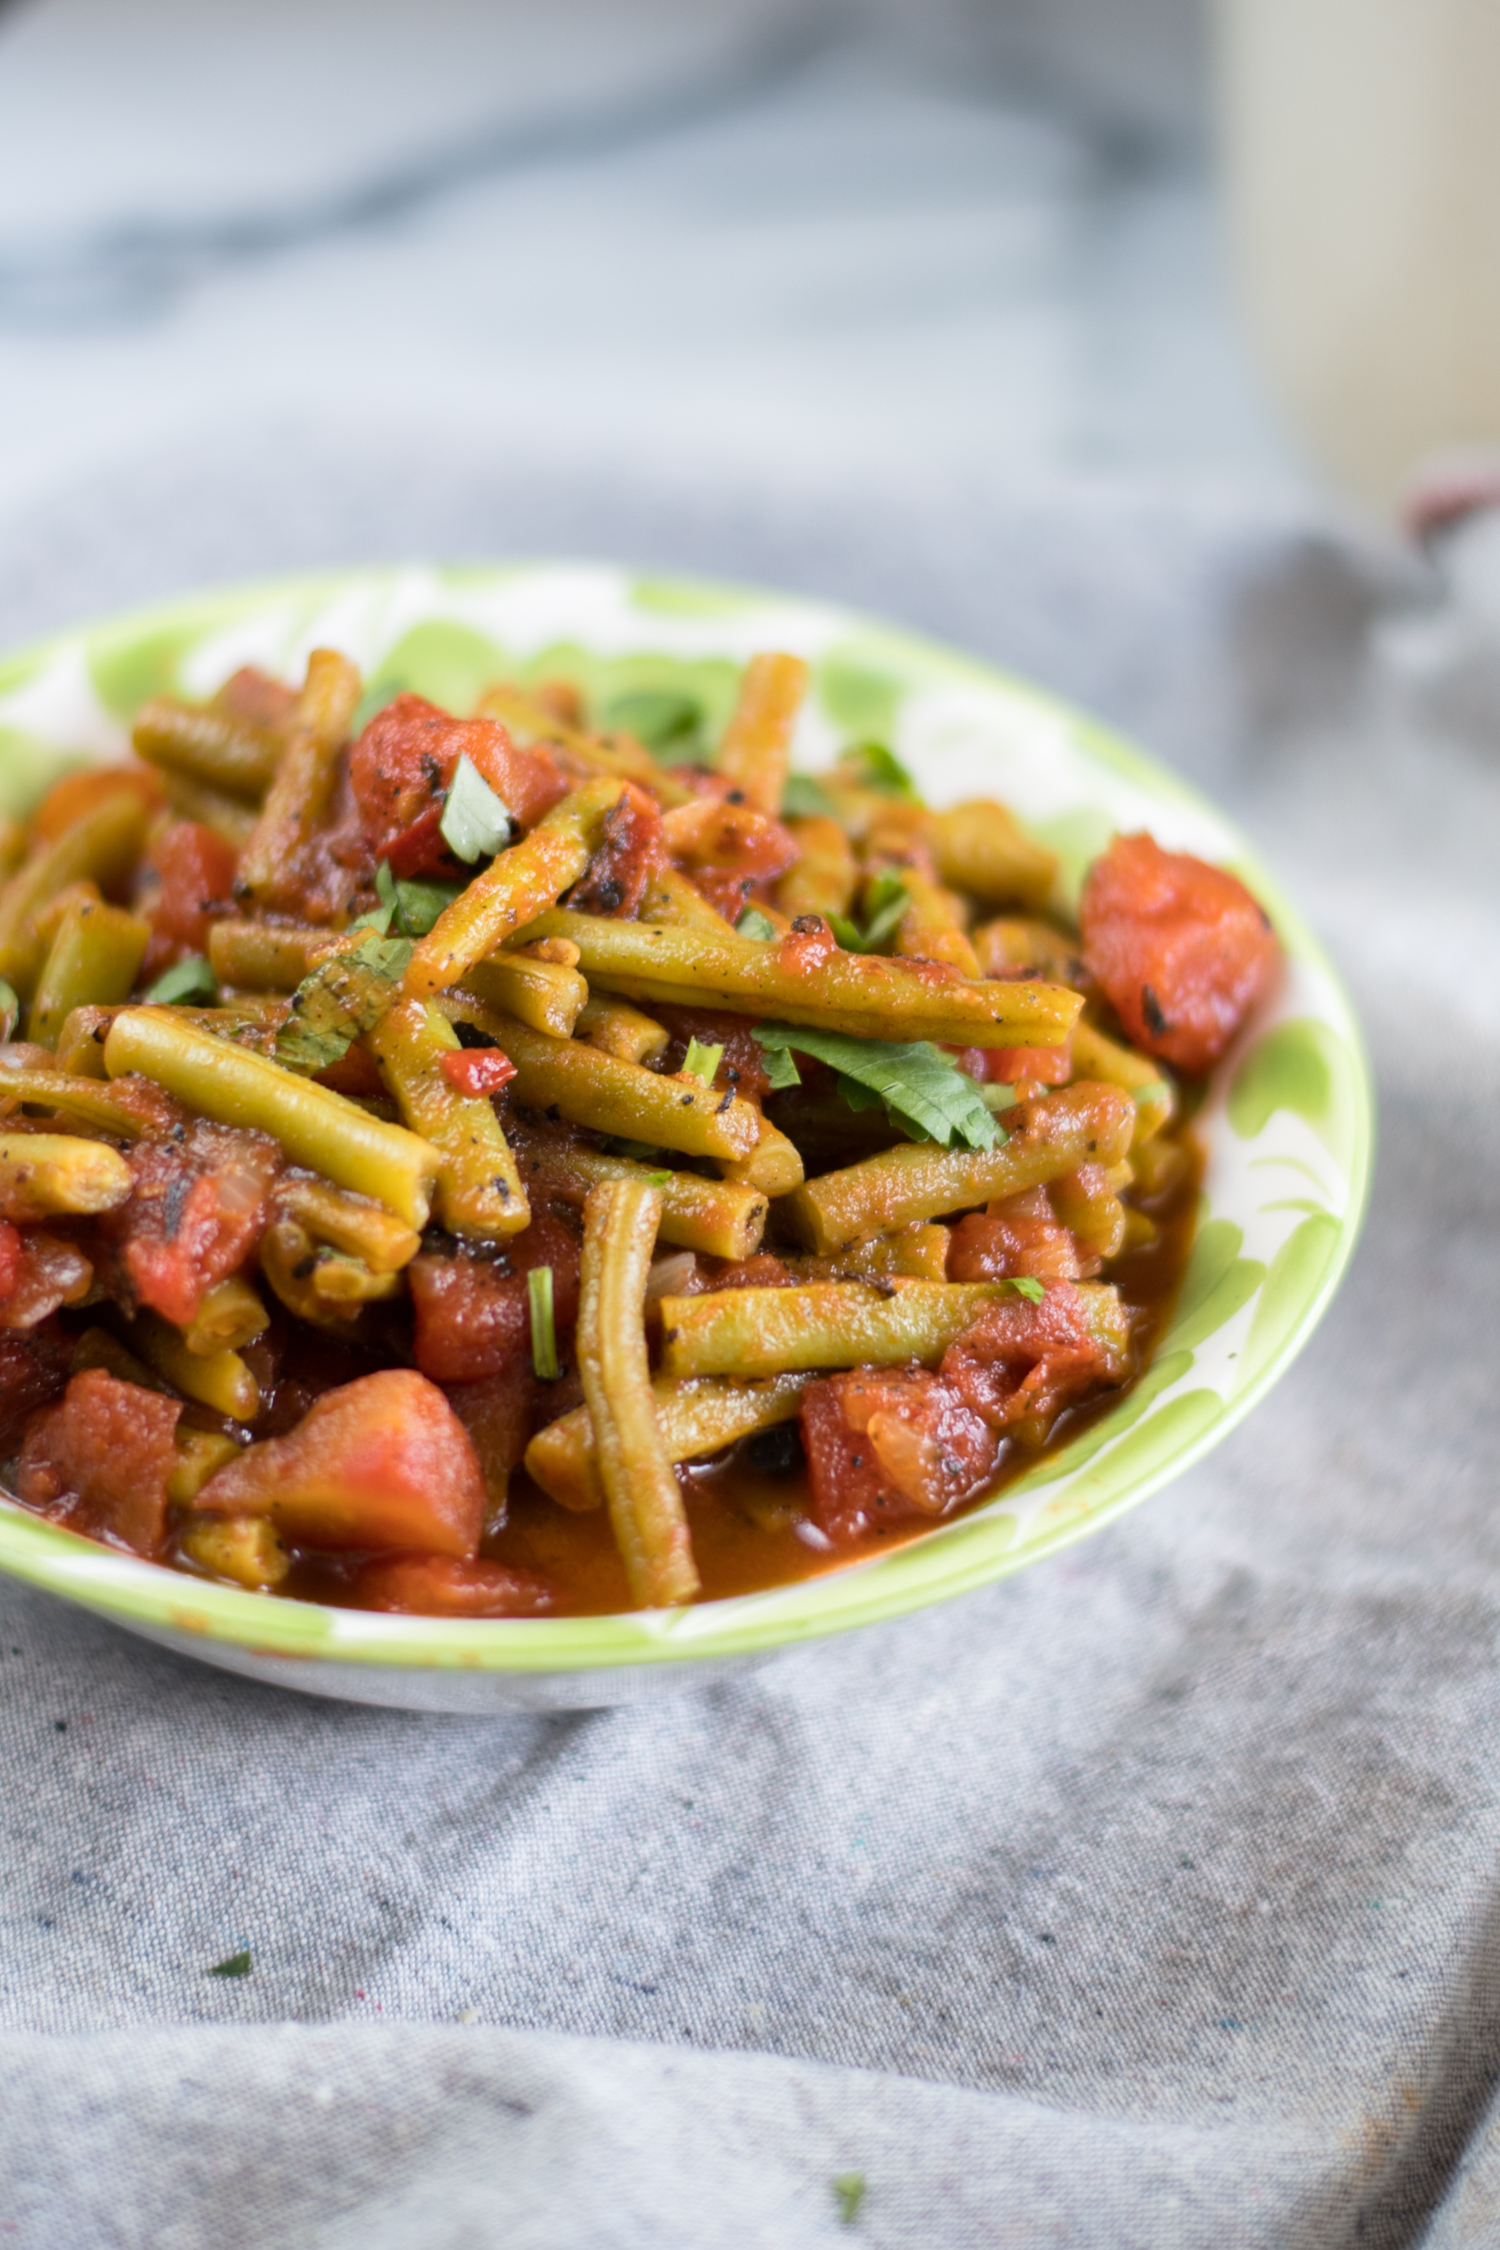 Green Beans simmered in a simple tomato and chipotle sauce. #Greenbeans #Recipe #summer #greenbeans #vegan #side